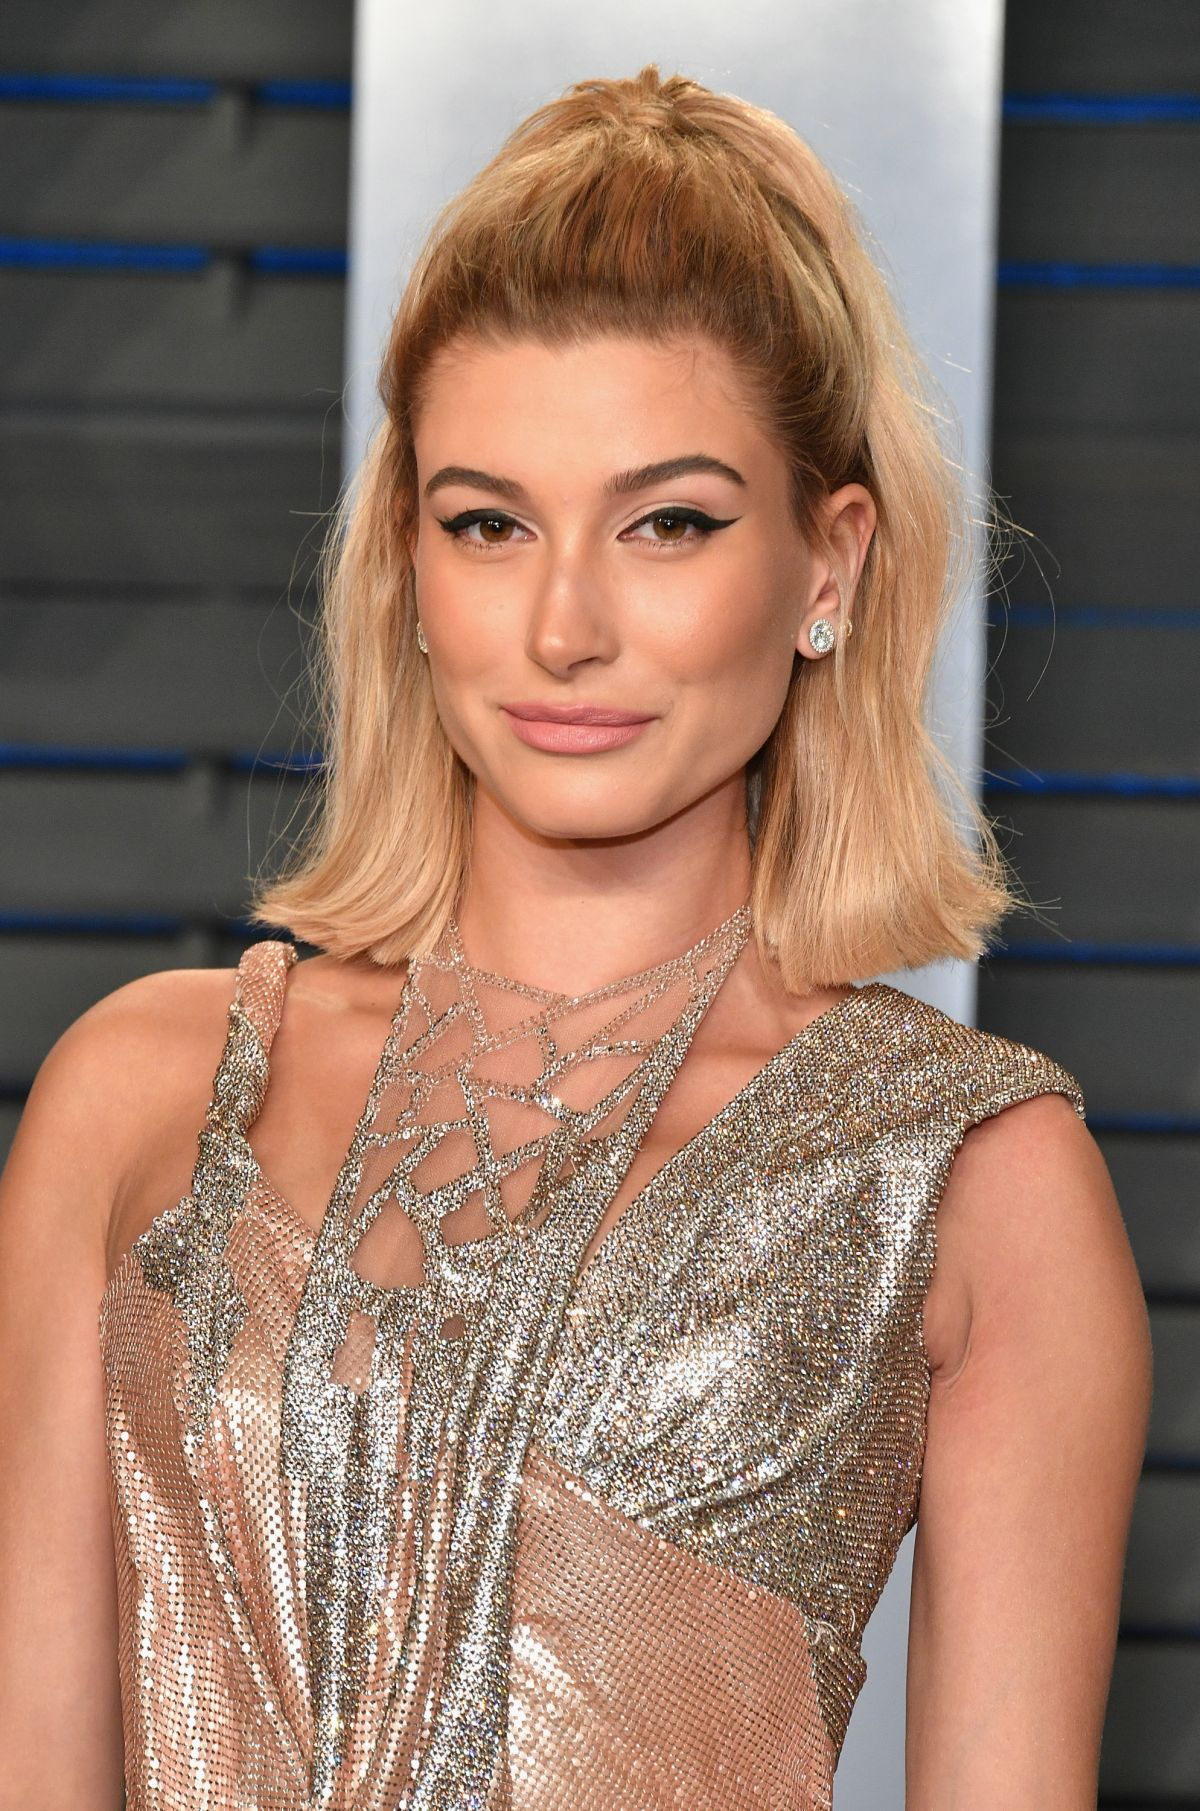 hailey baldwin - photo #7